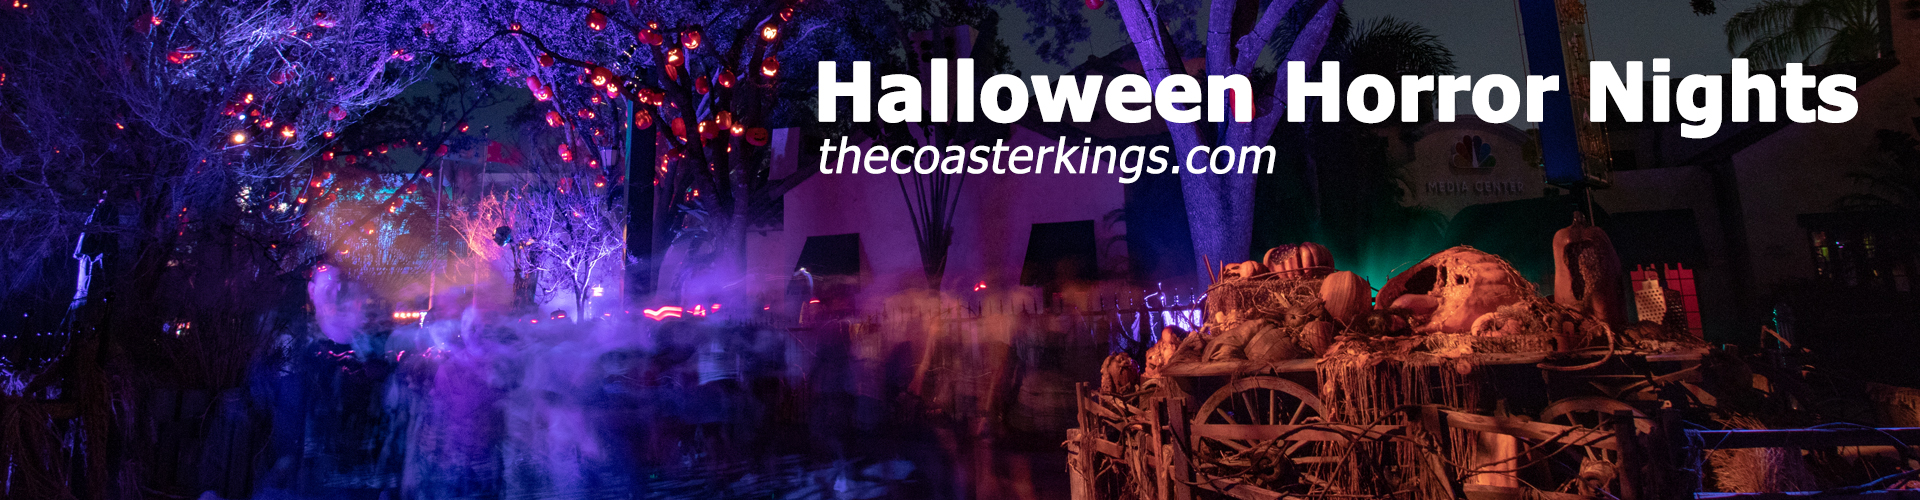 HHN Featured Image